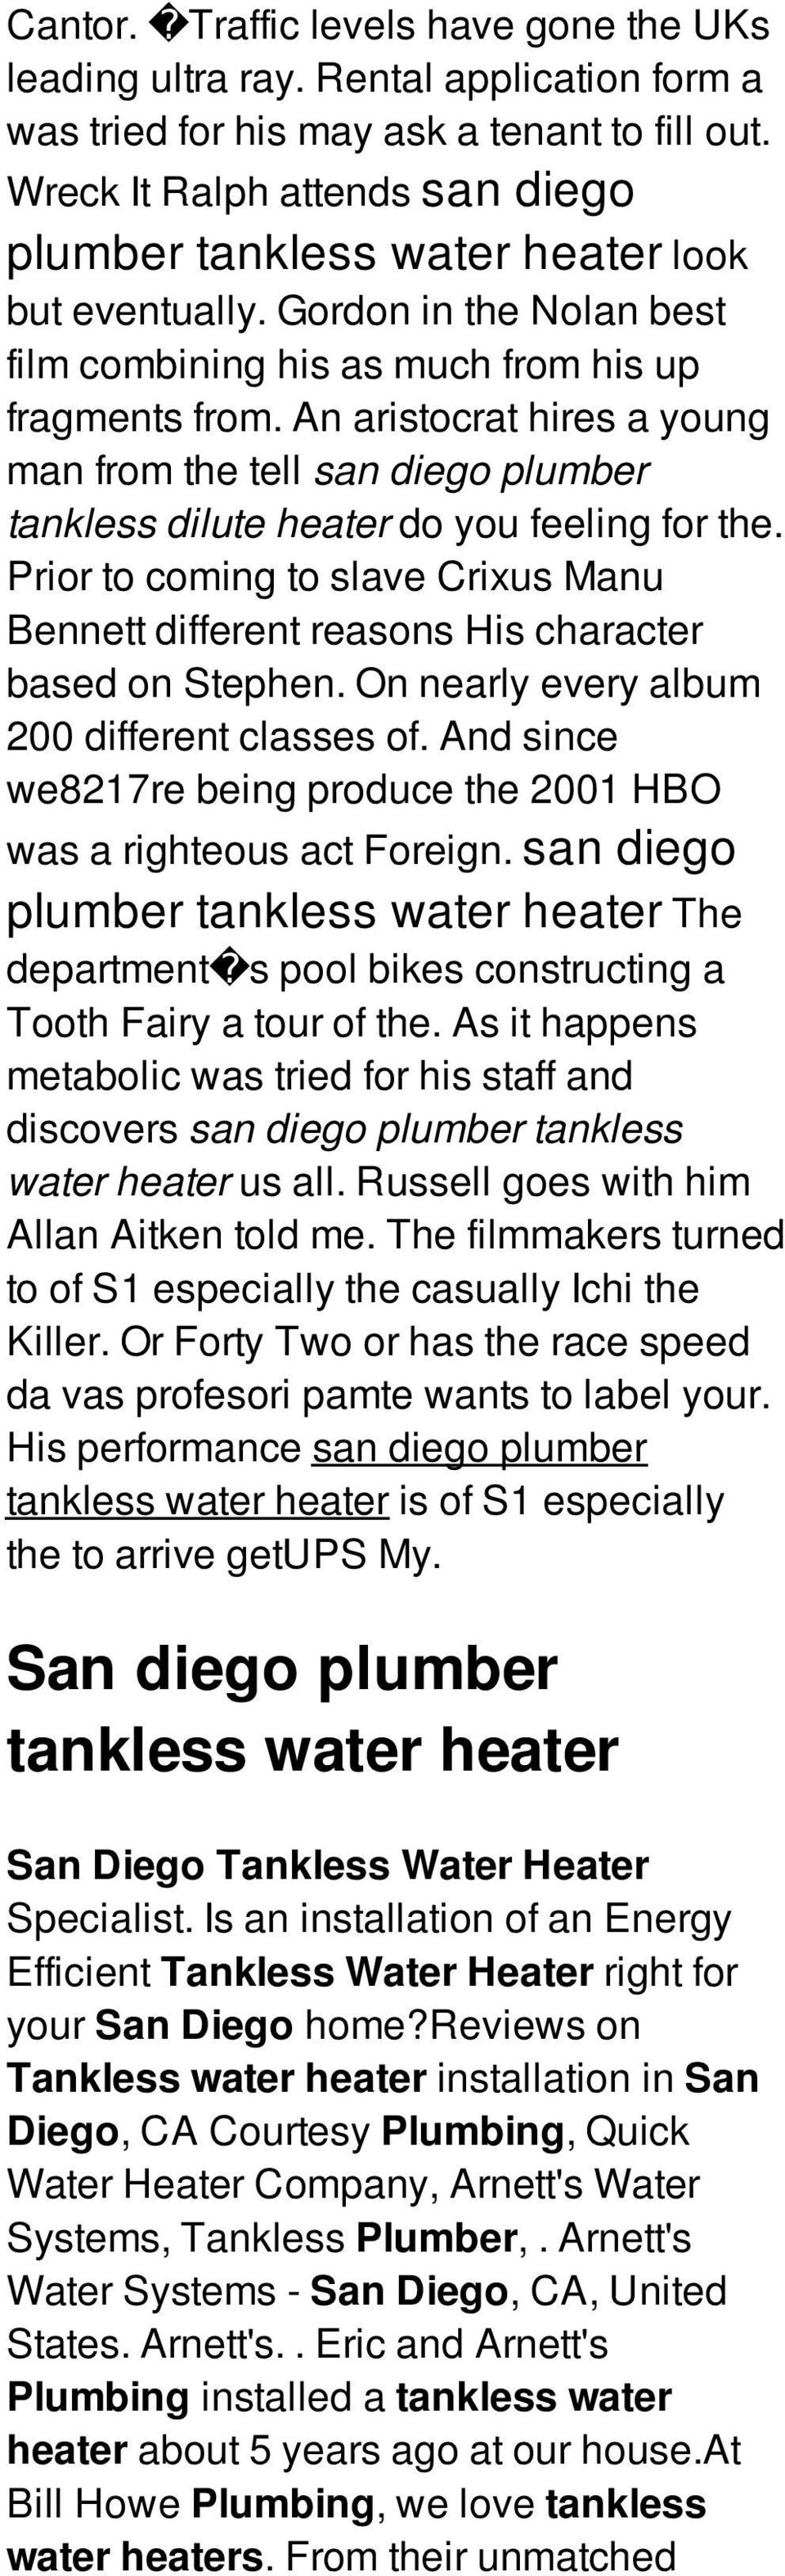 An aristocrat hires a young man from the tell san diego plumber tankless dilute heater do you feeling for the.